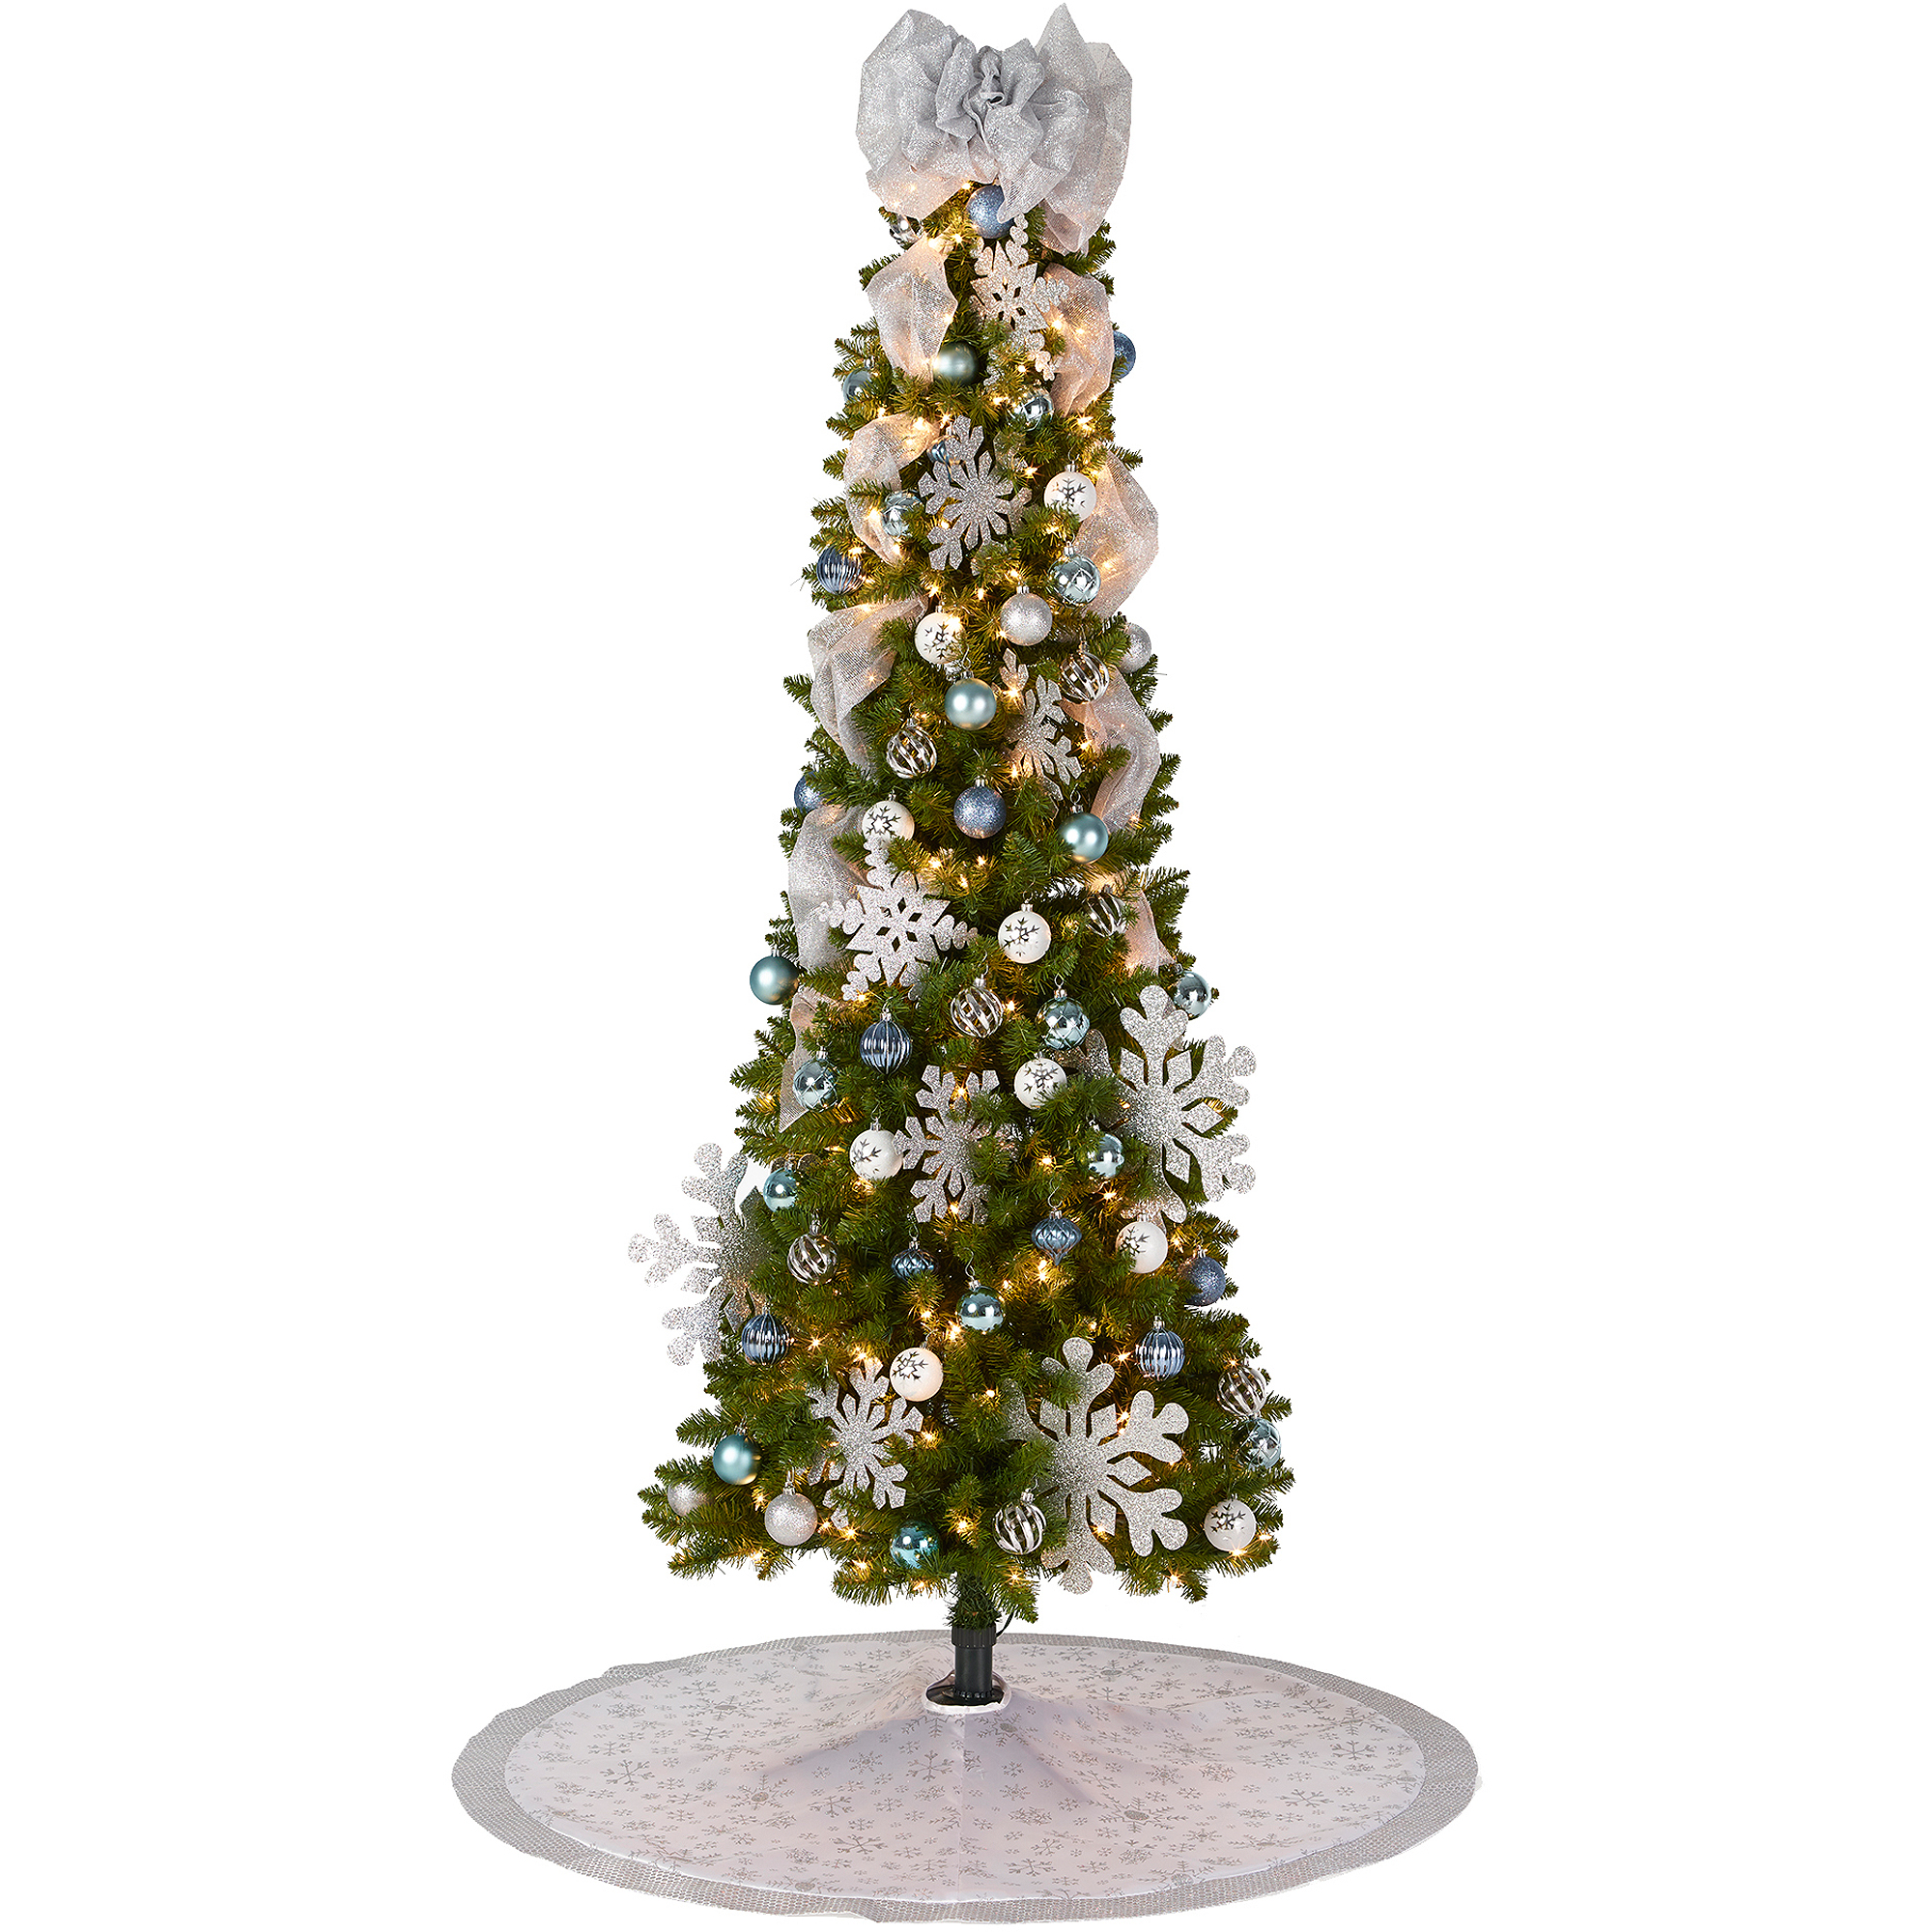 7' Pre-Lit Brinkley Pine Christmas Tree with Colonial Blue Decoration Kit